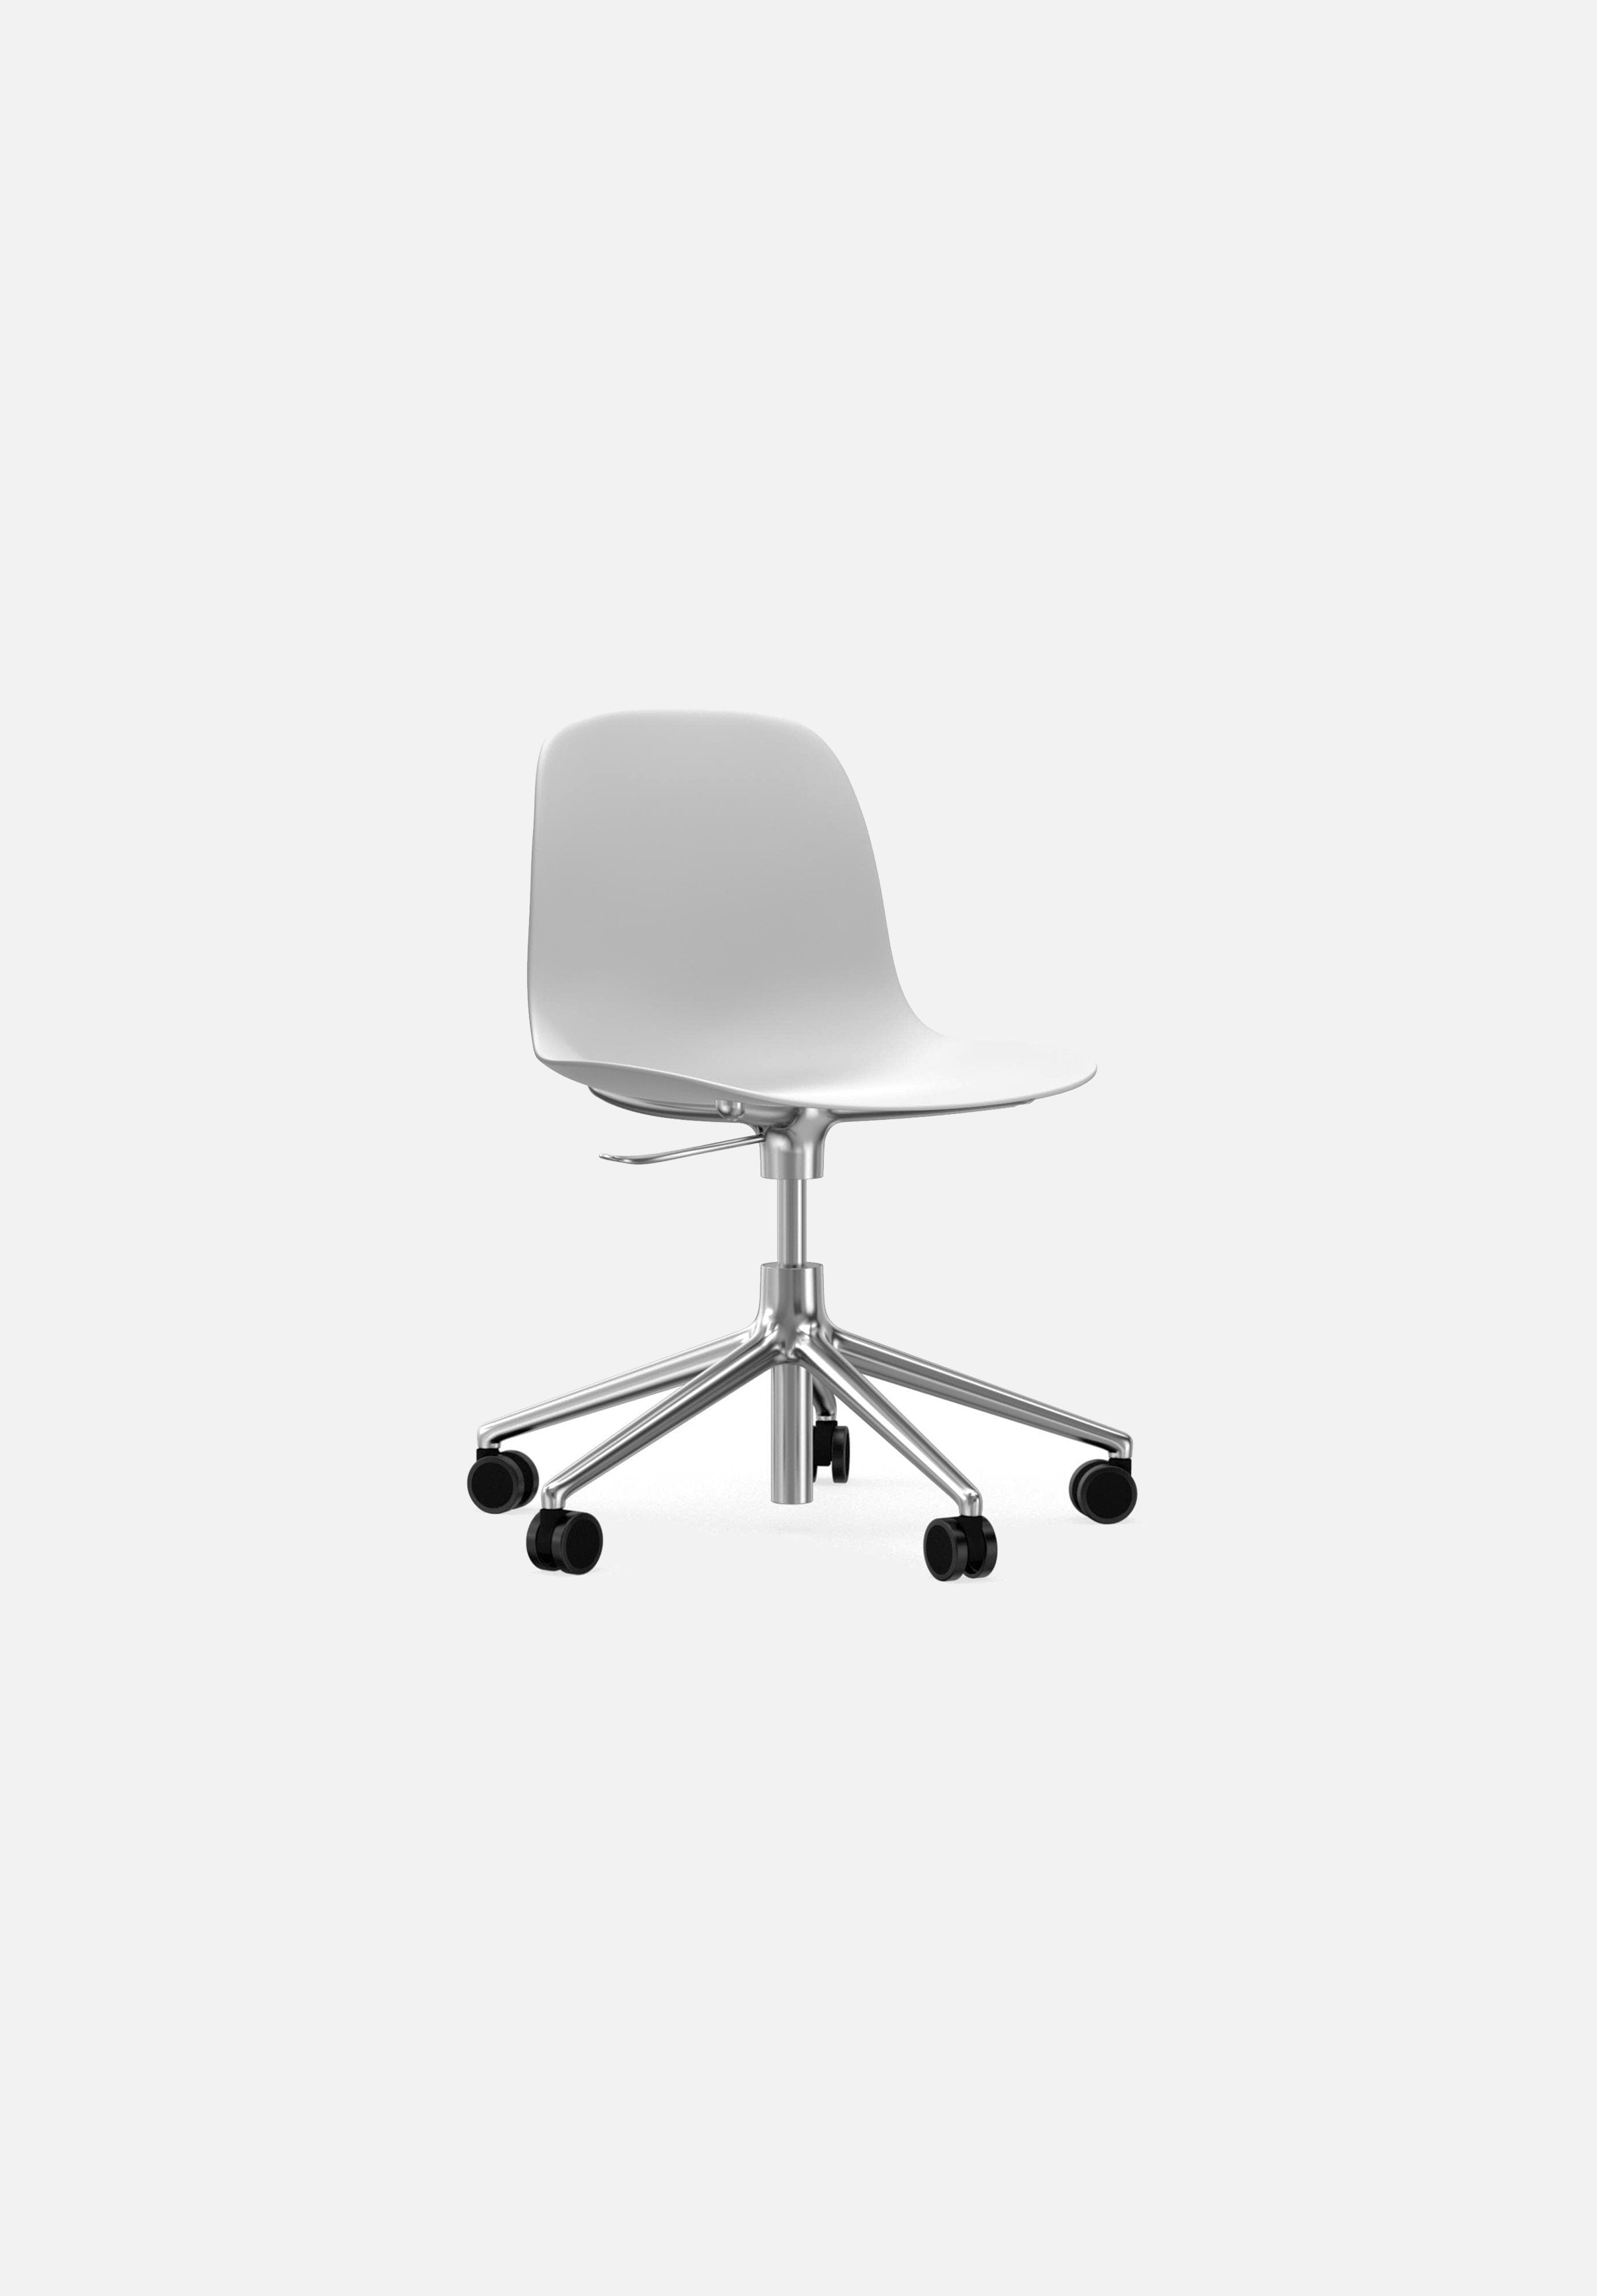 Form Chair — Swivel Gaslift-Simon Legald-Normann Copenhagen-White-Polished Aluminum-Average